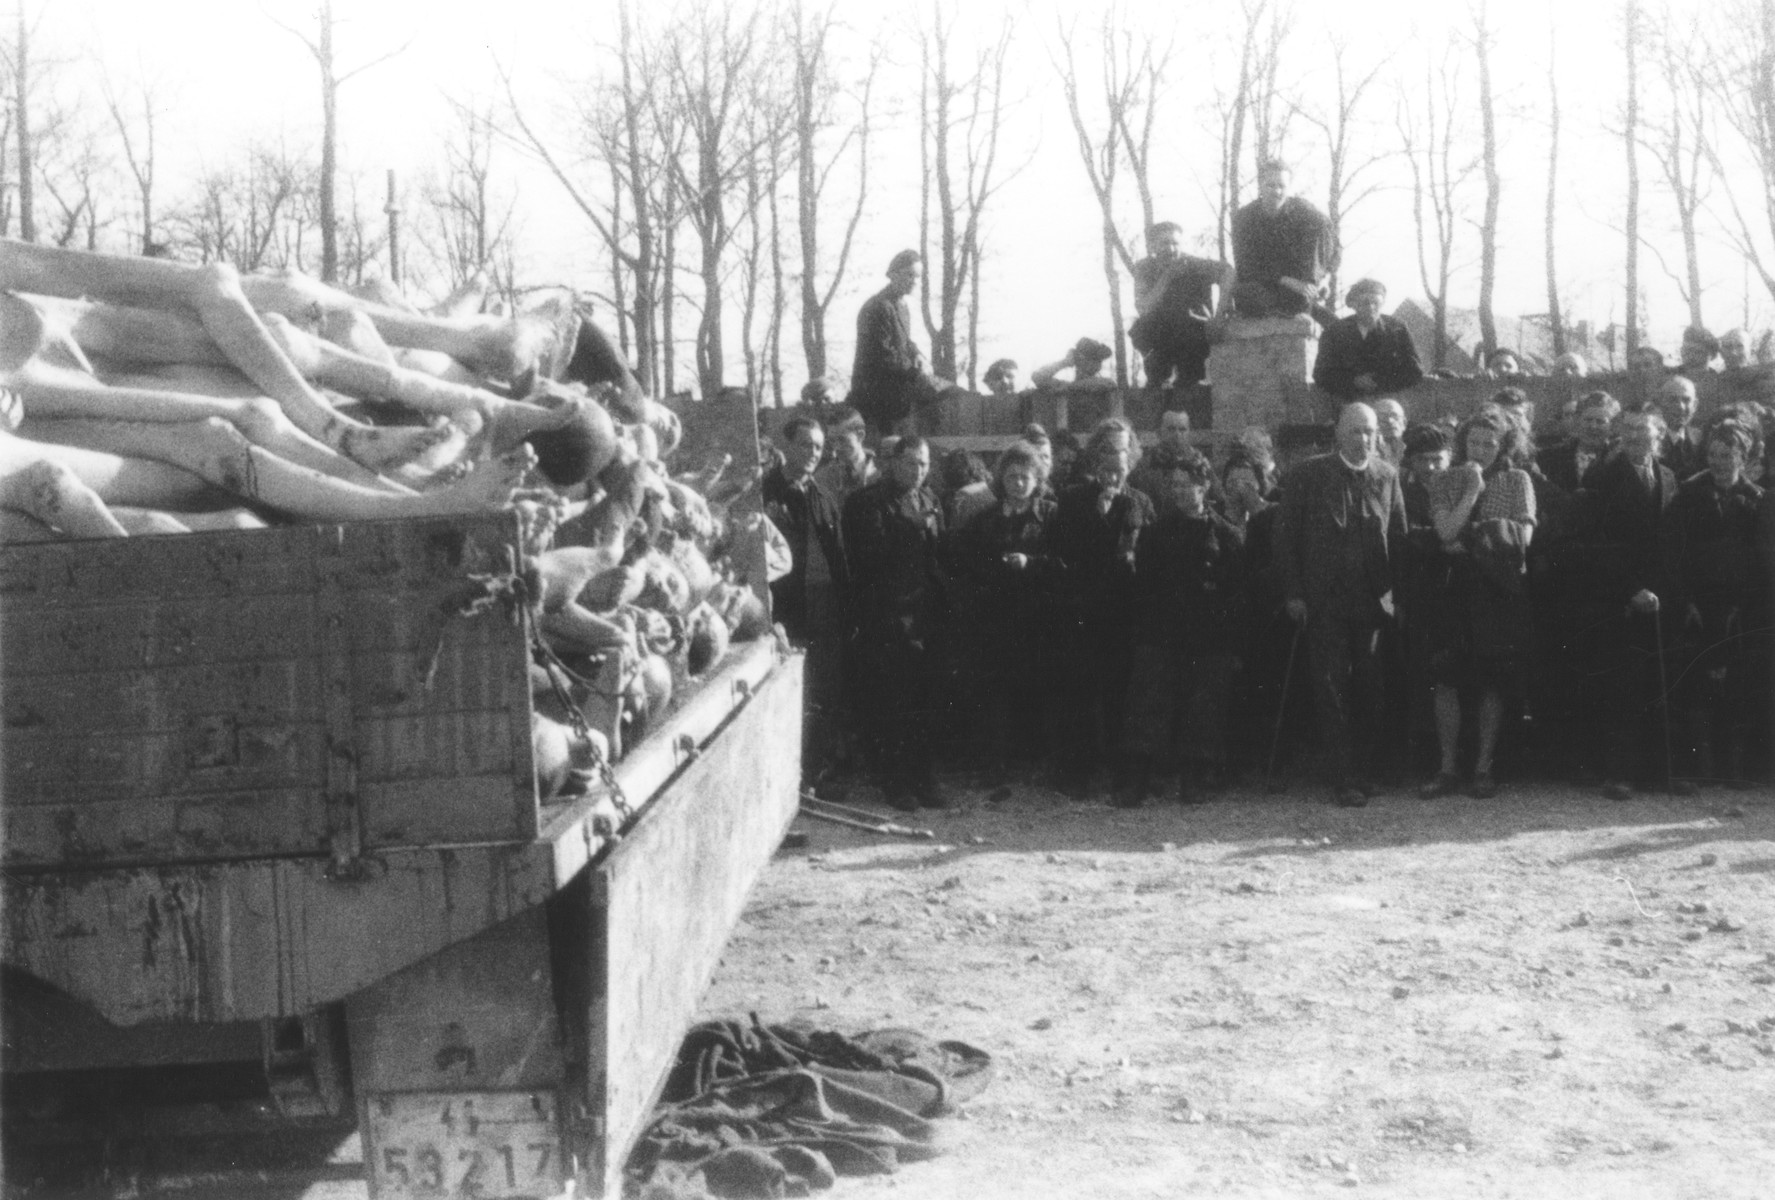 German civilians view a wagon piled high with corpses in the newly liberated Buchenwald concentration camp.